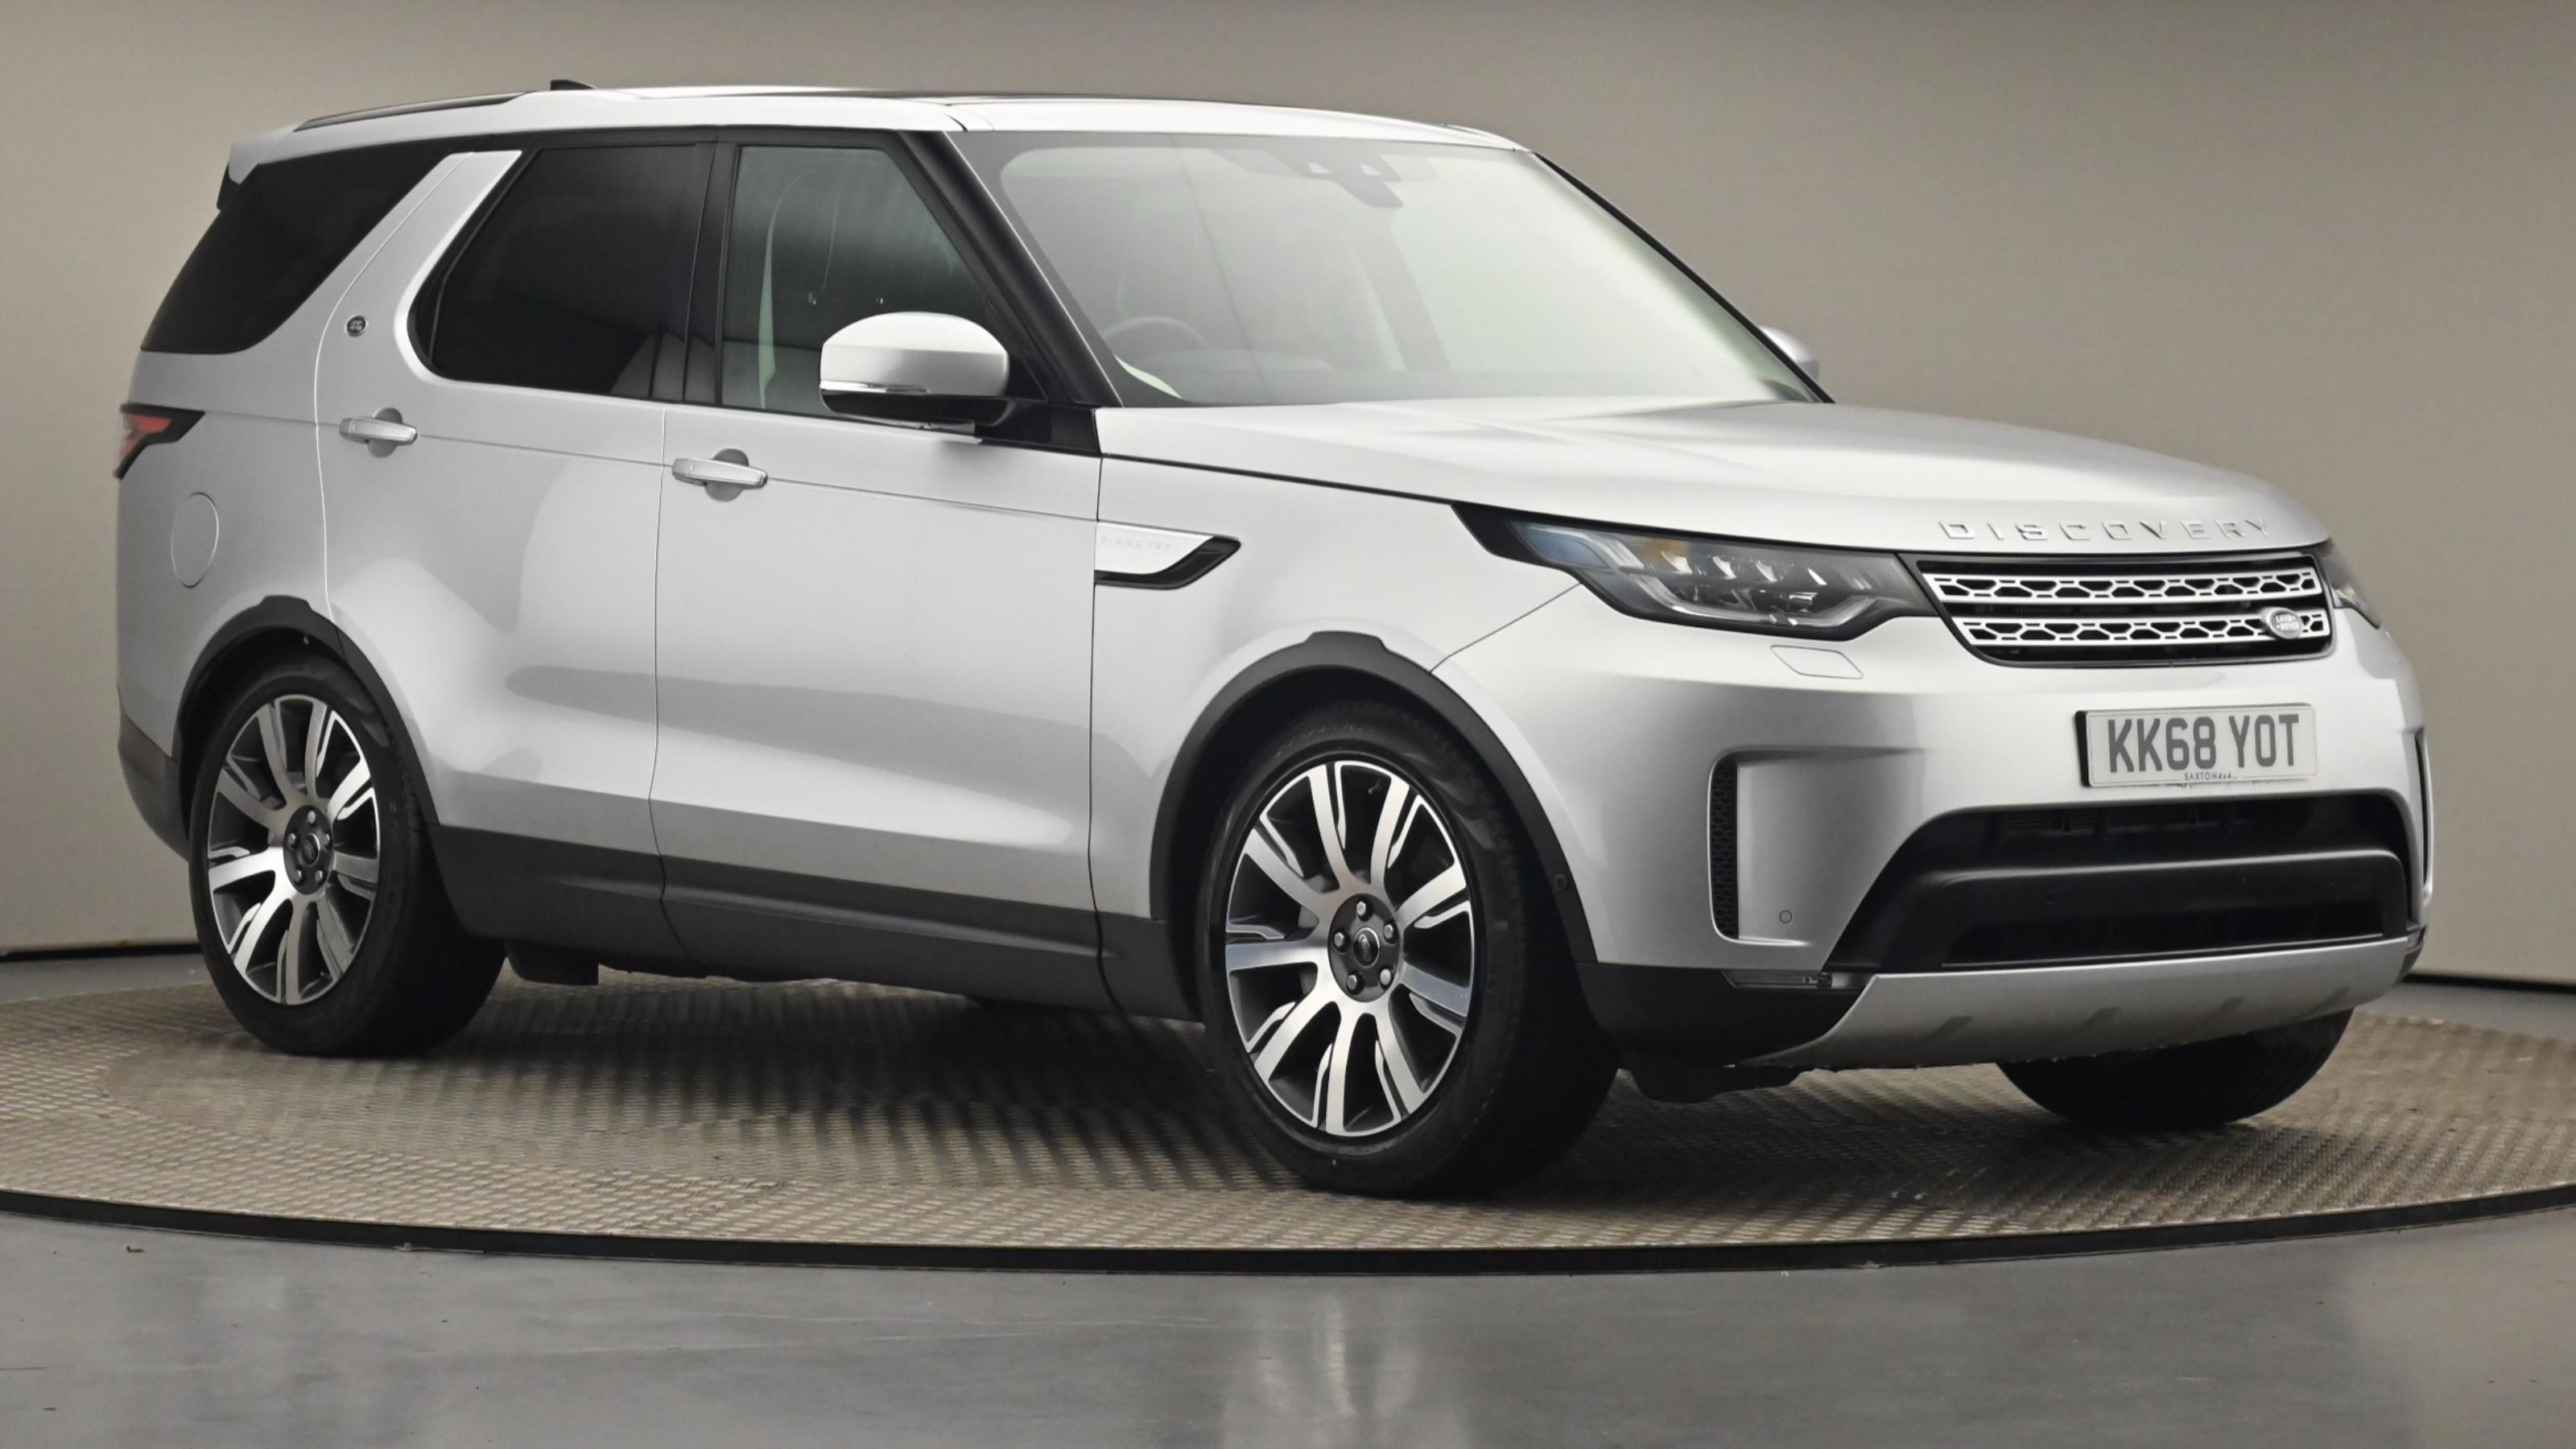 Used 2019 Land Rover DISCOVERY 3.0 SDV6 HSE Luxury 5dr Auto SILVER at Saxton4x4